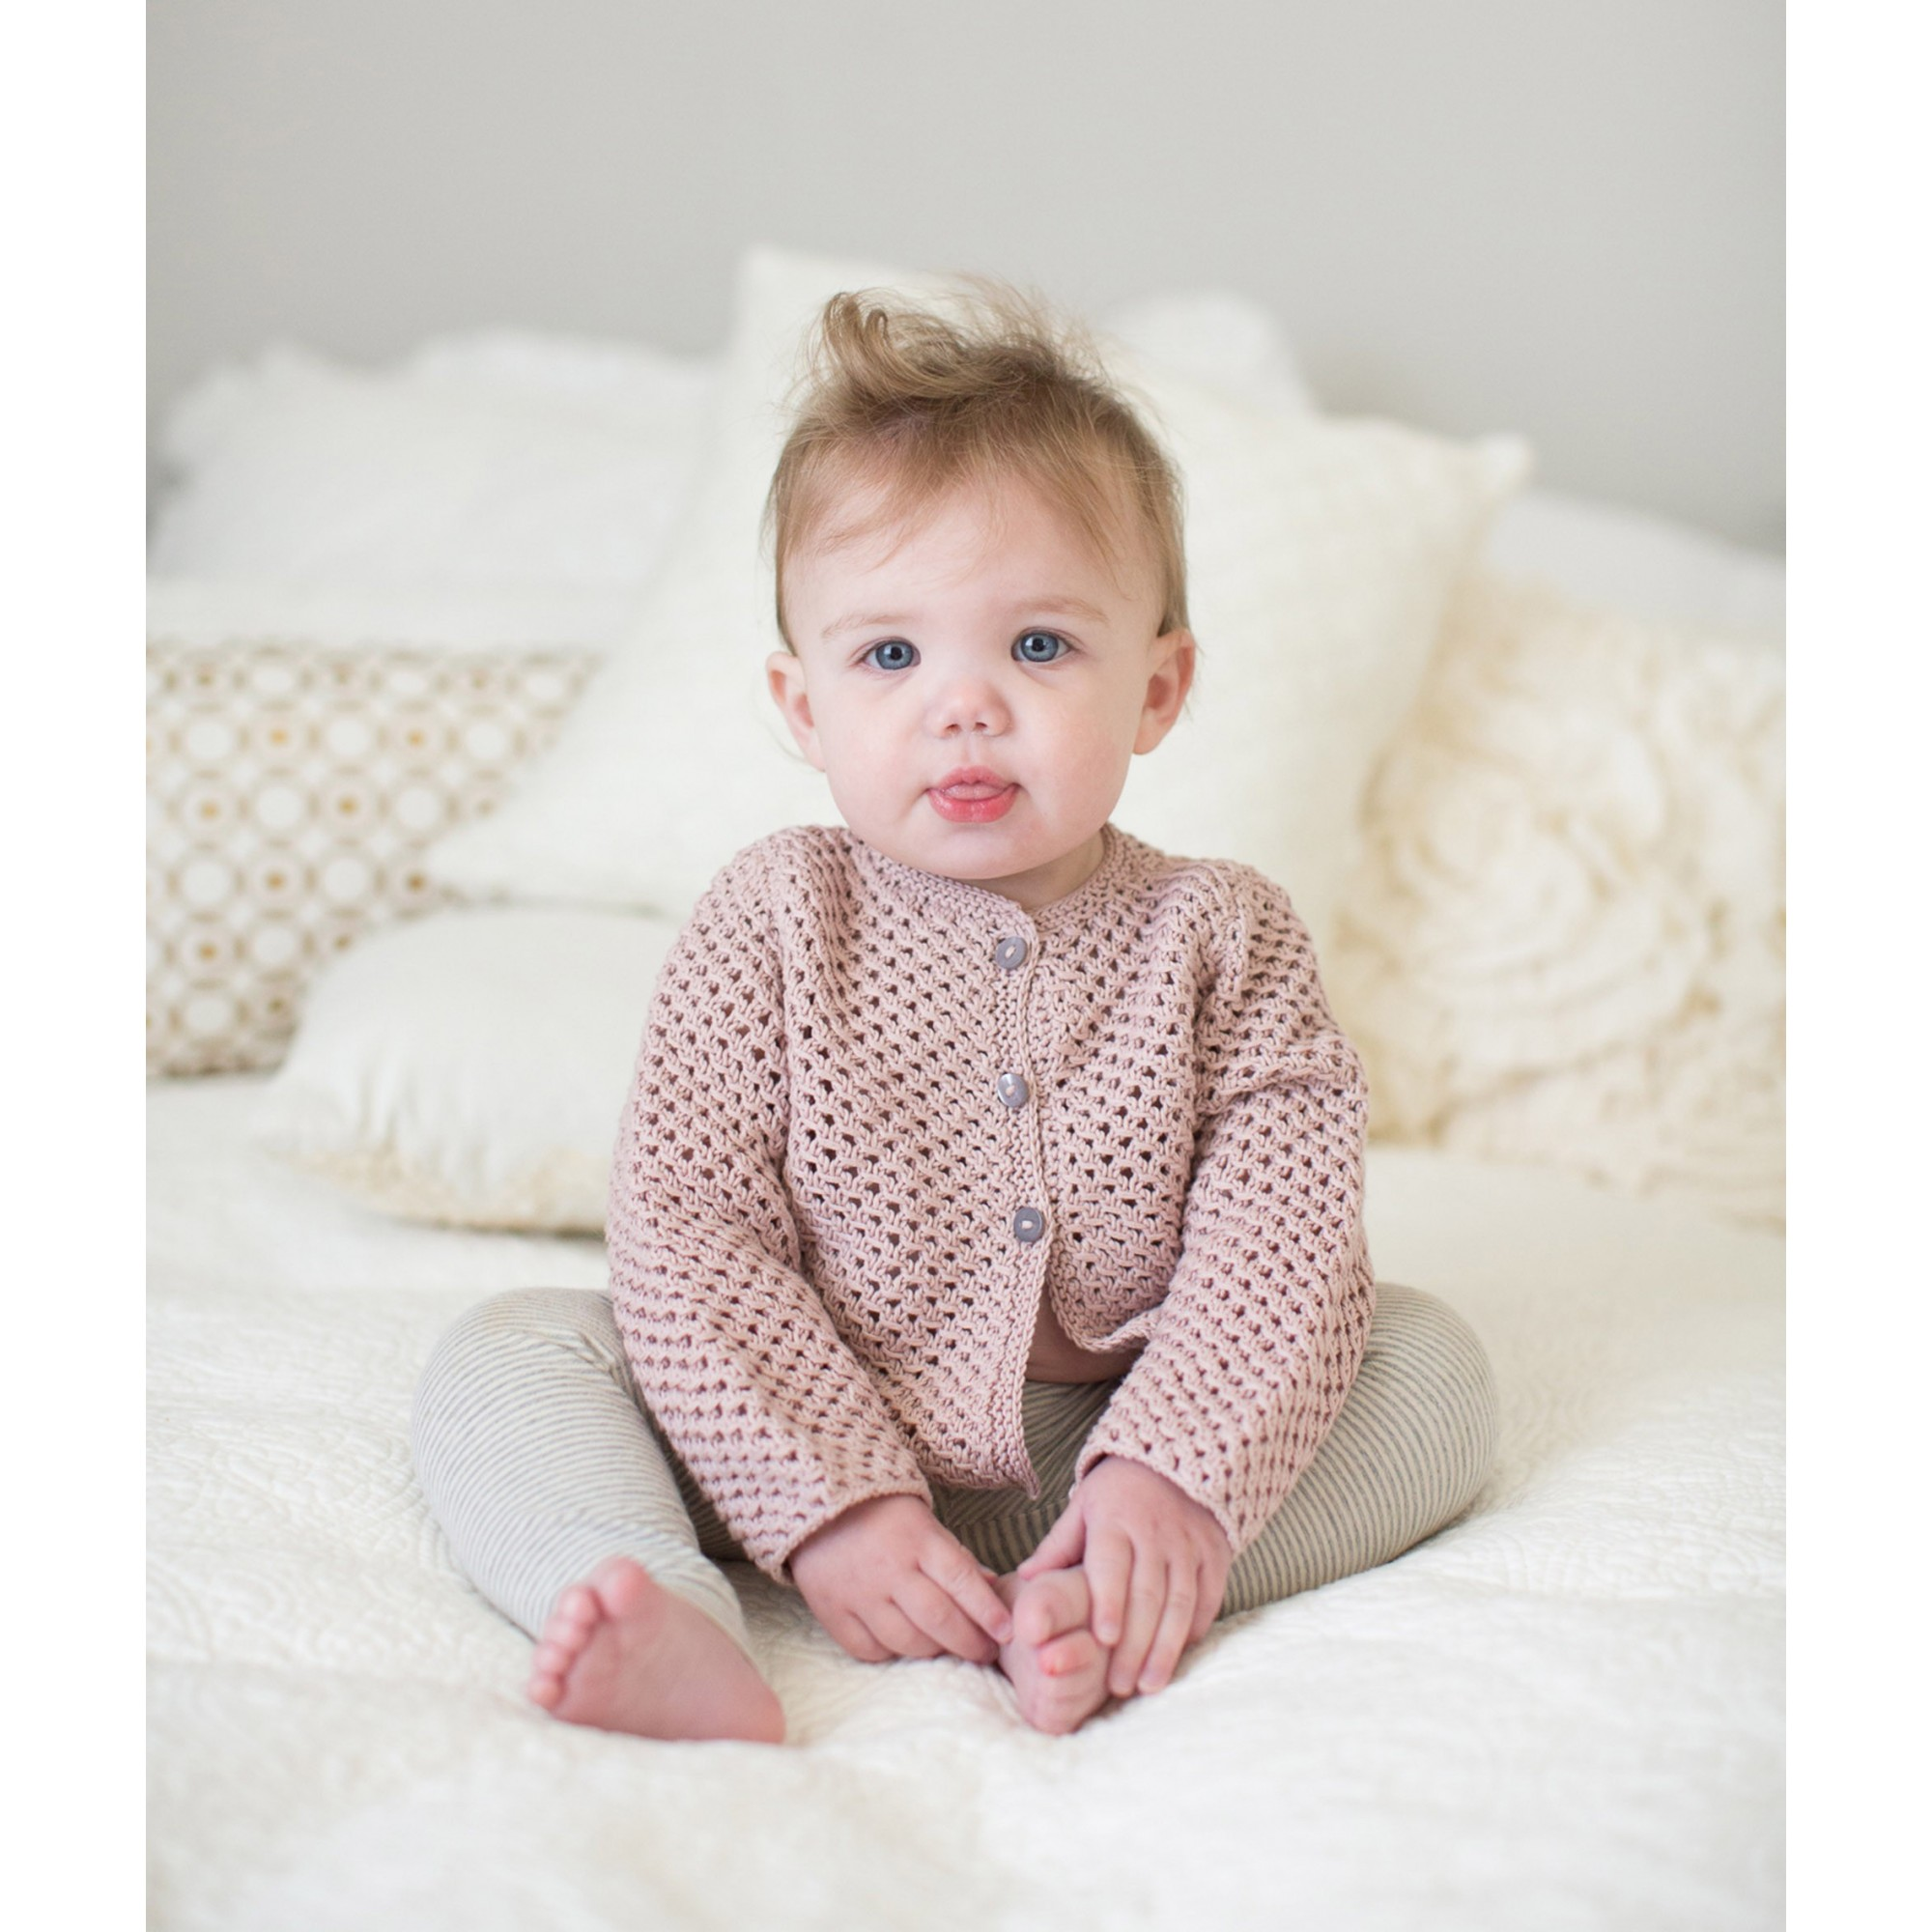 Joséphine cardigan for baby - opaline pink color - worn